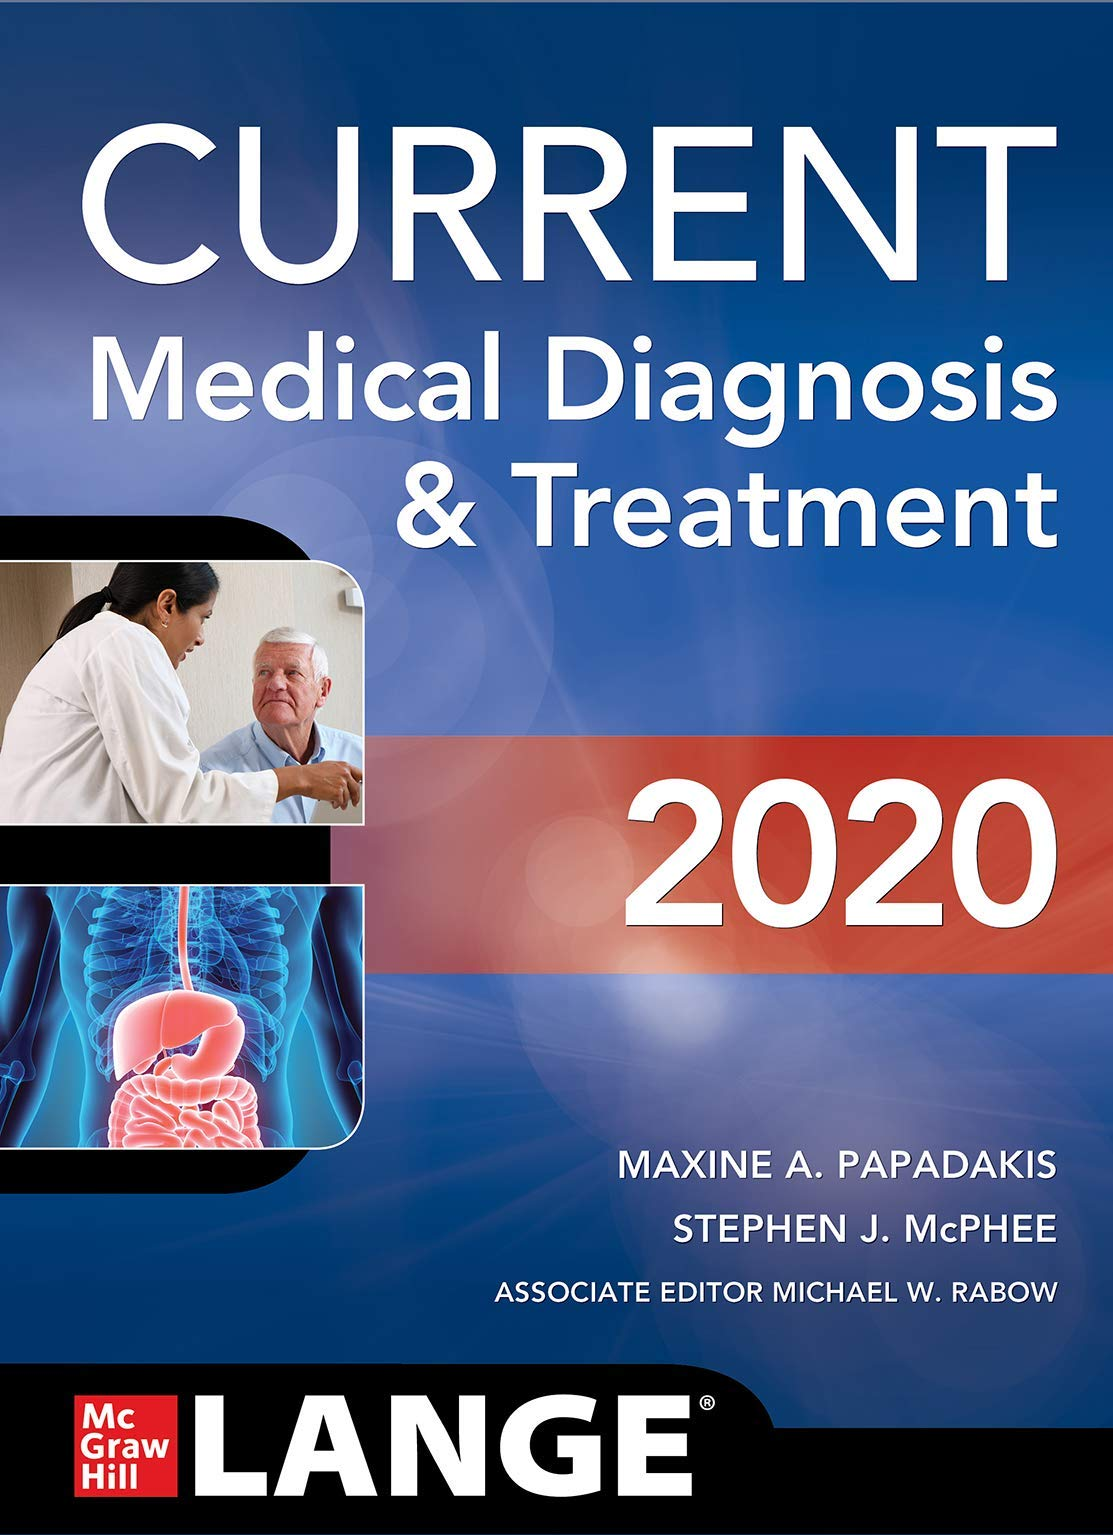 CURRENT Medical Diagnosis and Treatment 2020 by McGraw-Hill Education / Medical